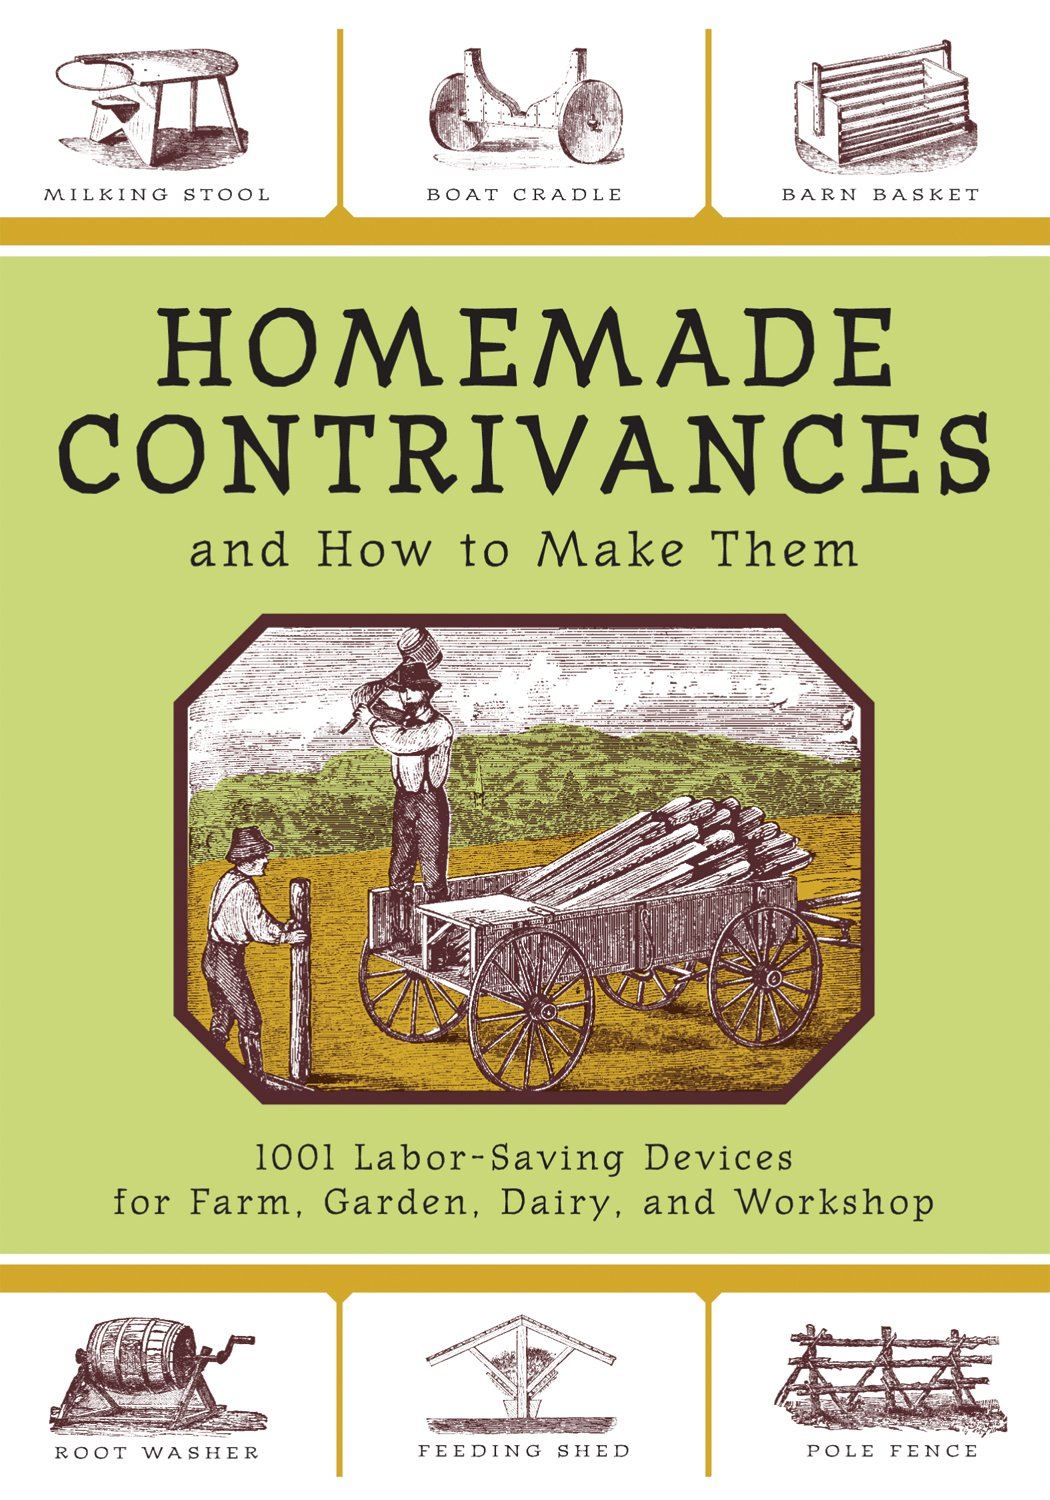 Homemade Contrivances And How to Make Them: 1001 Labor-Saving Devices for Farm, Garden, Dairy, and Workshop By: Skyhorse Publishing